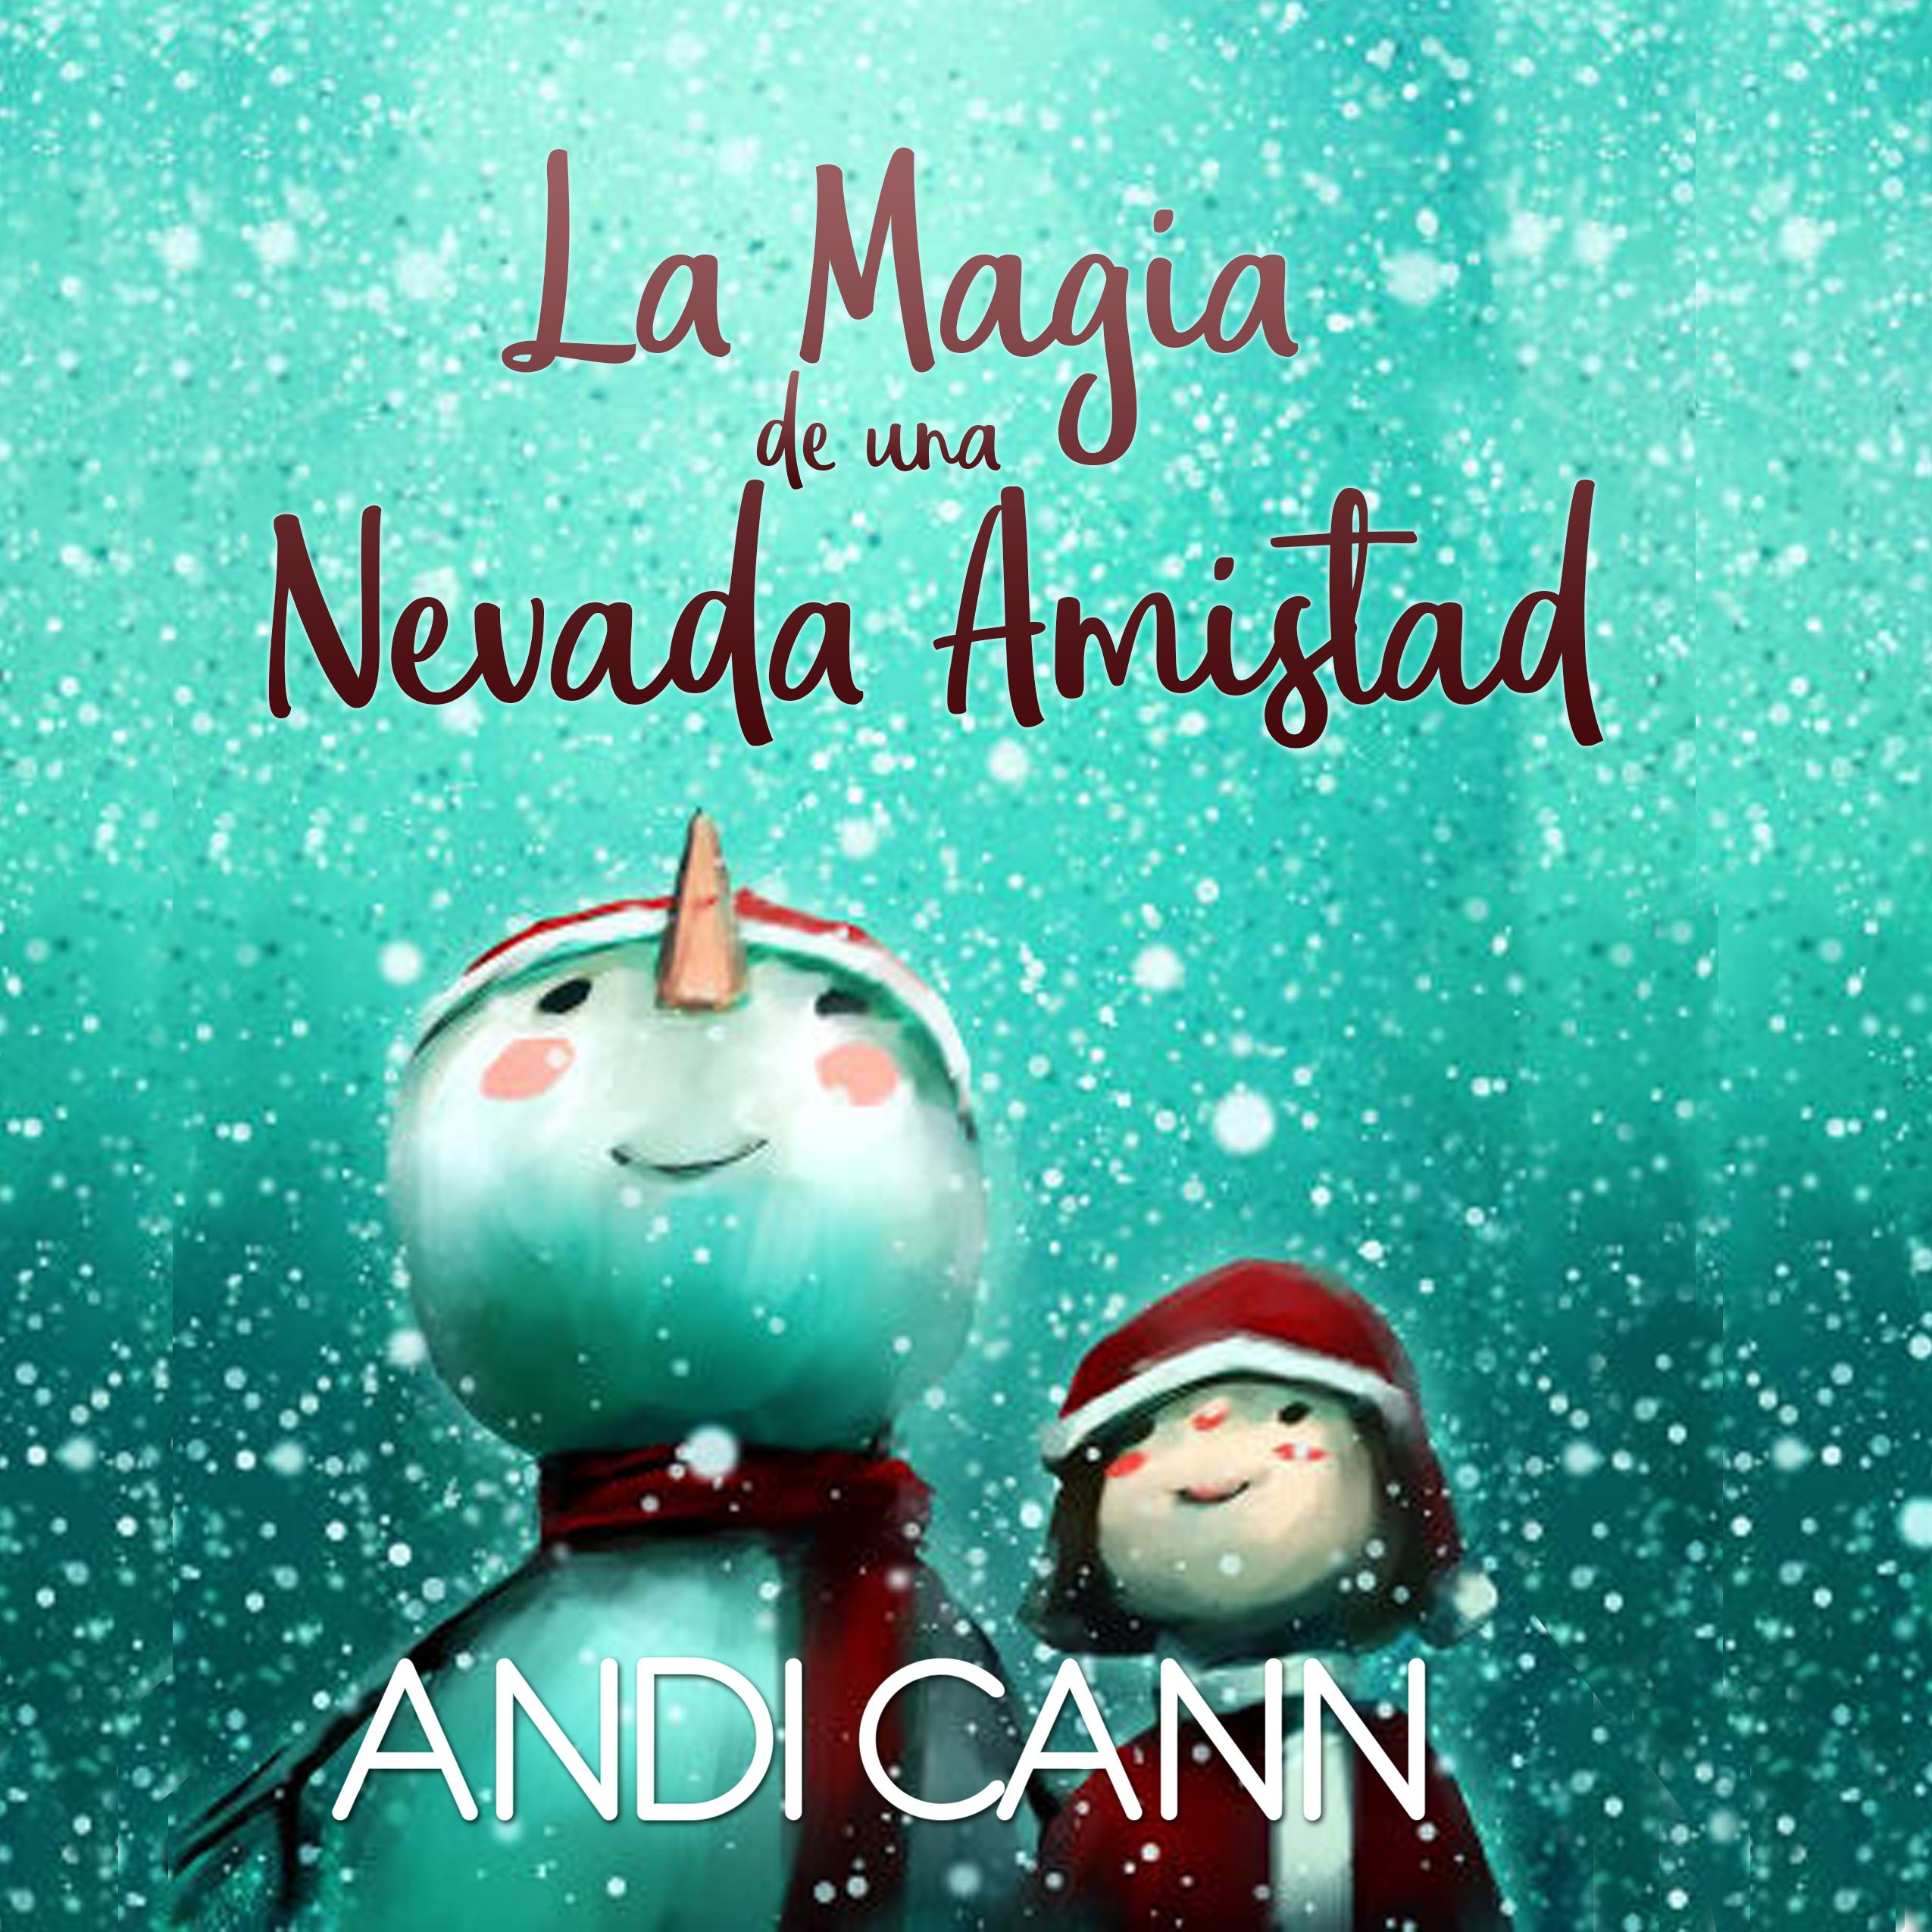 The Magic Of Friendship Snow Translated Into Spanish